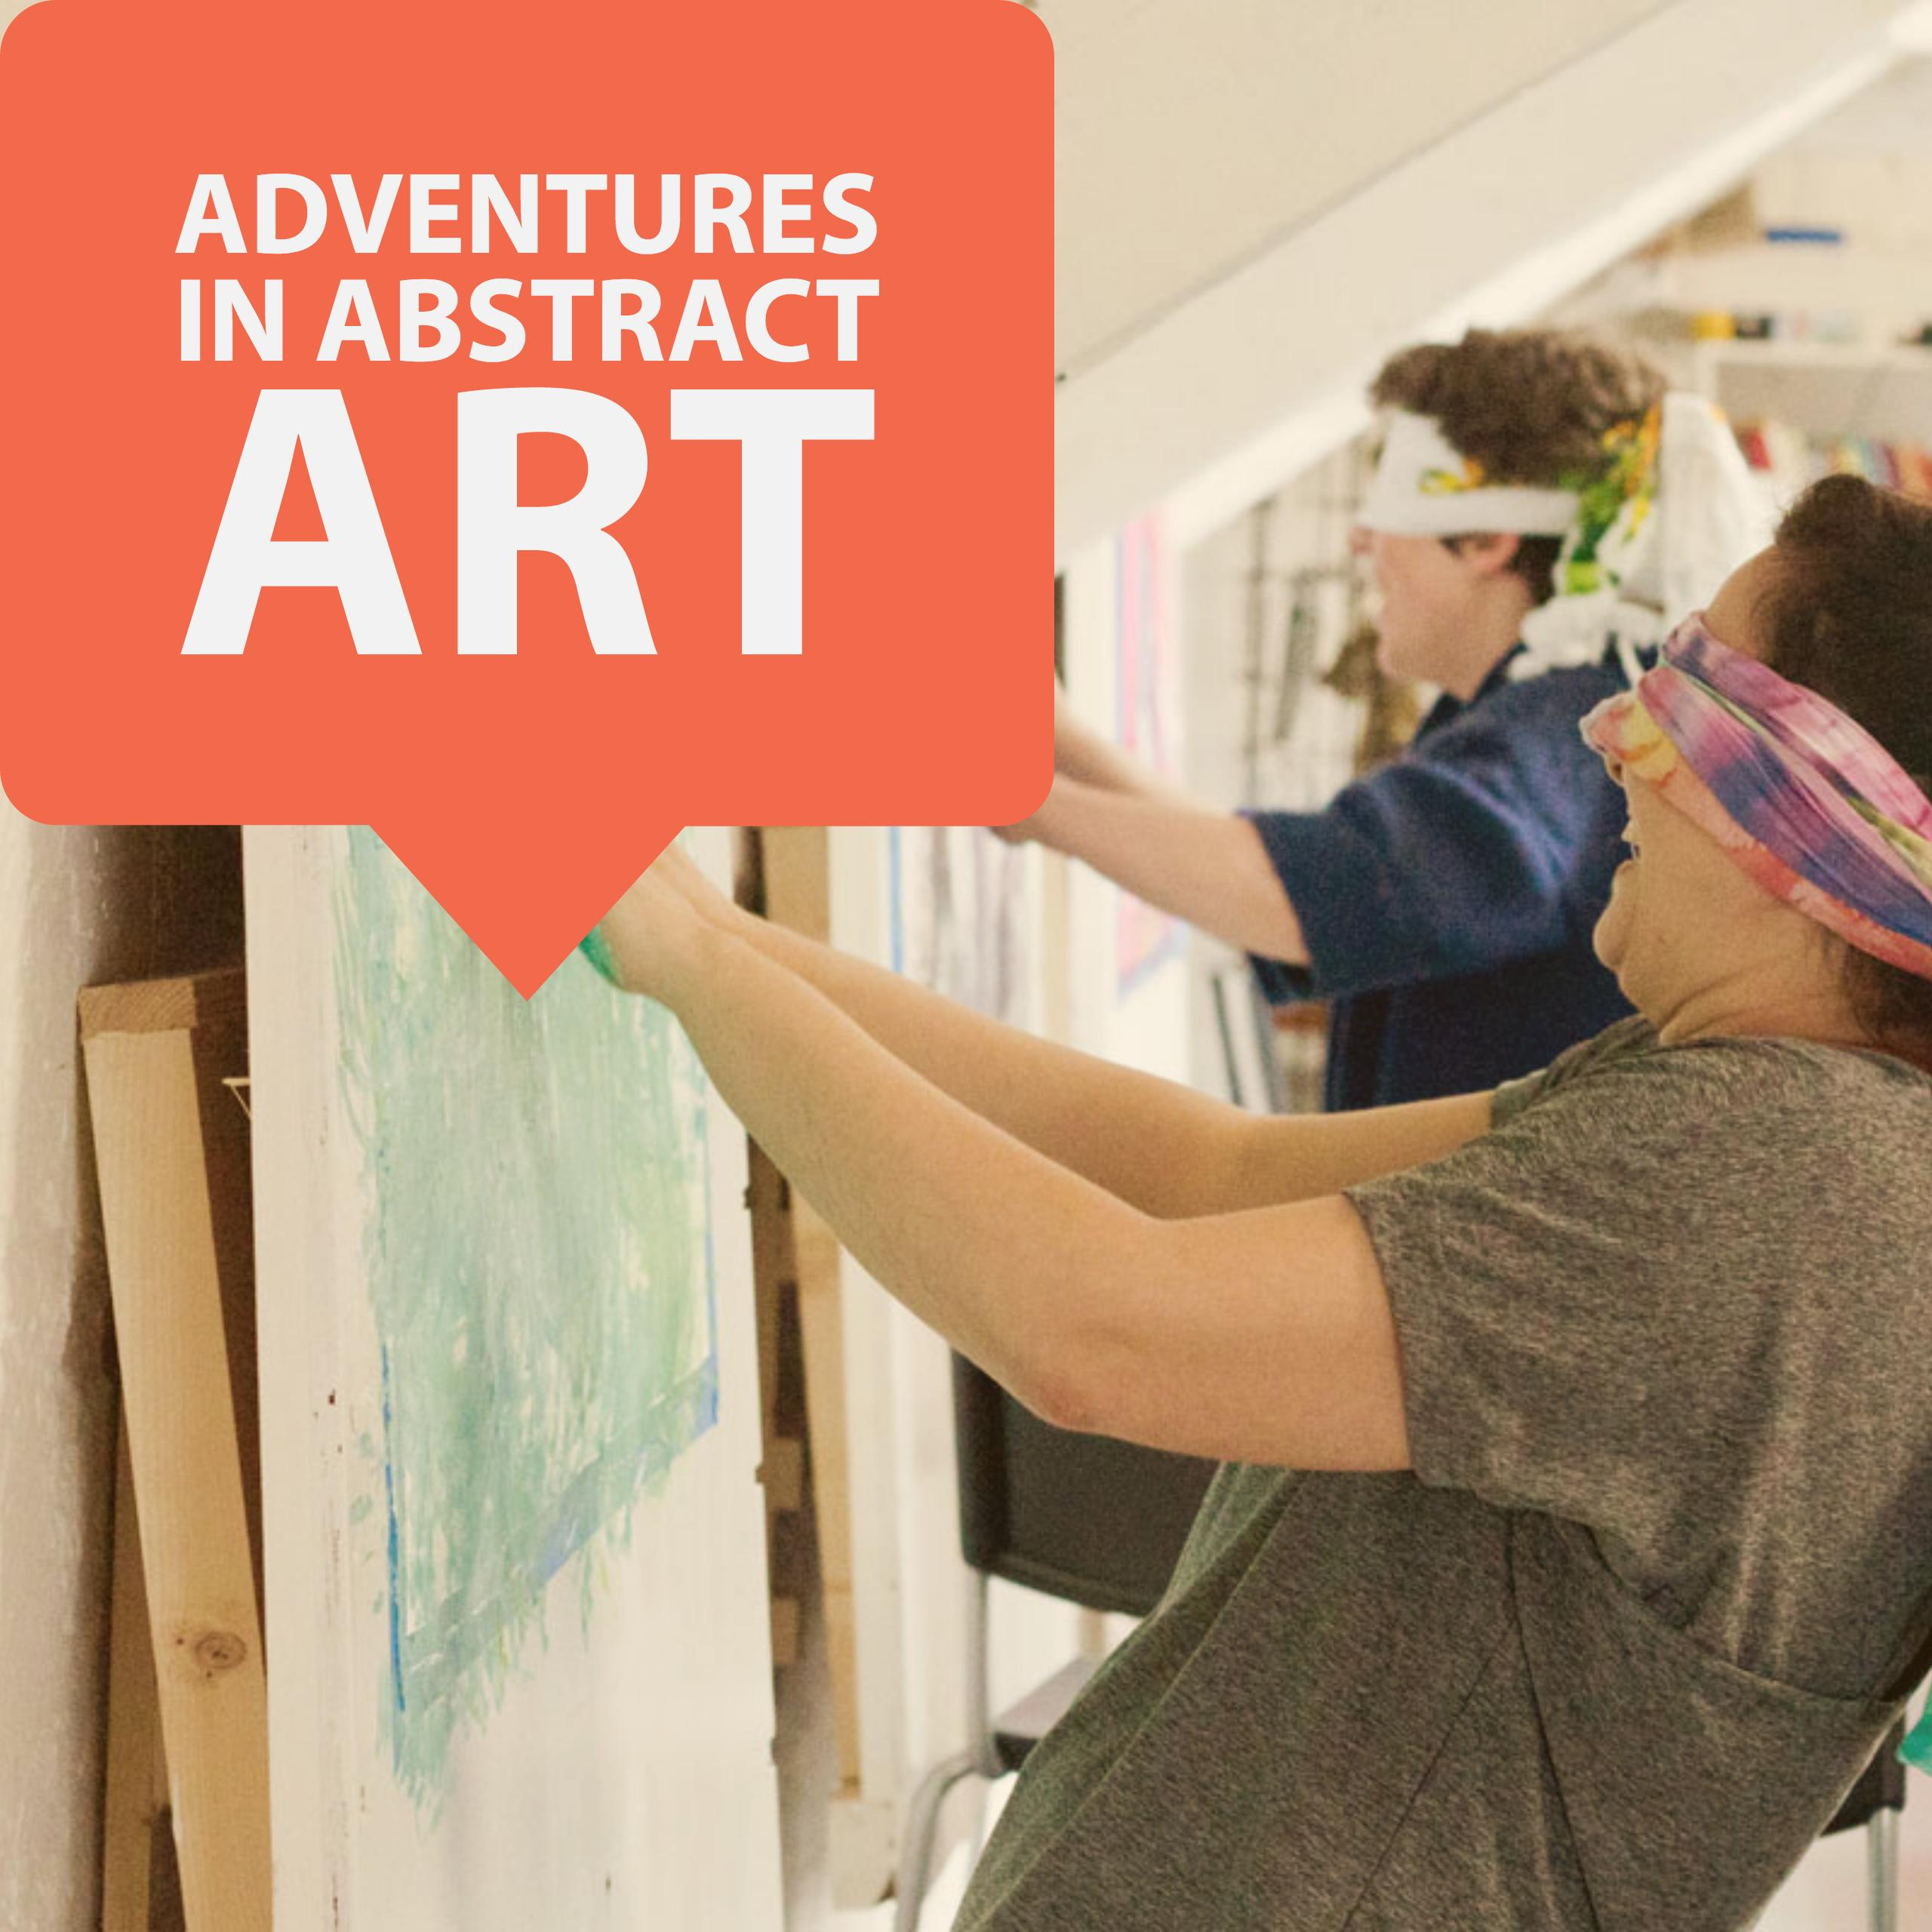 Adventures in Abstract Art, Dublin, 14-15 April (Easter W/end)